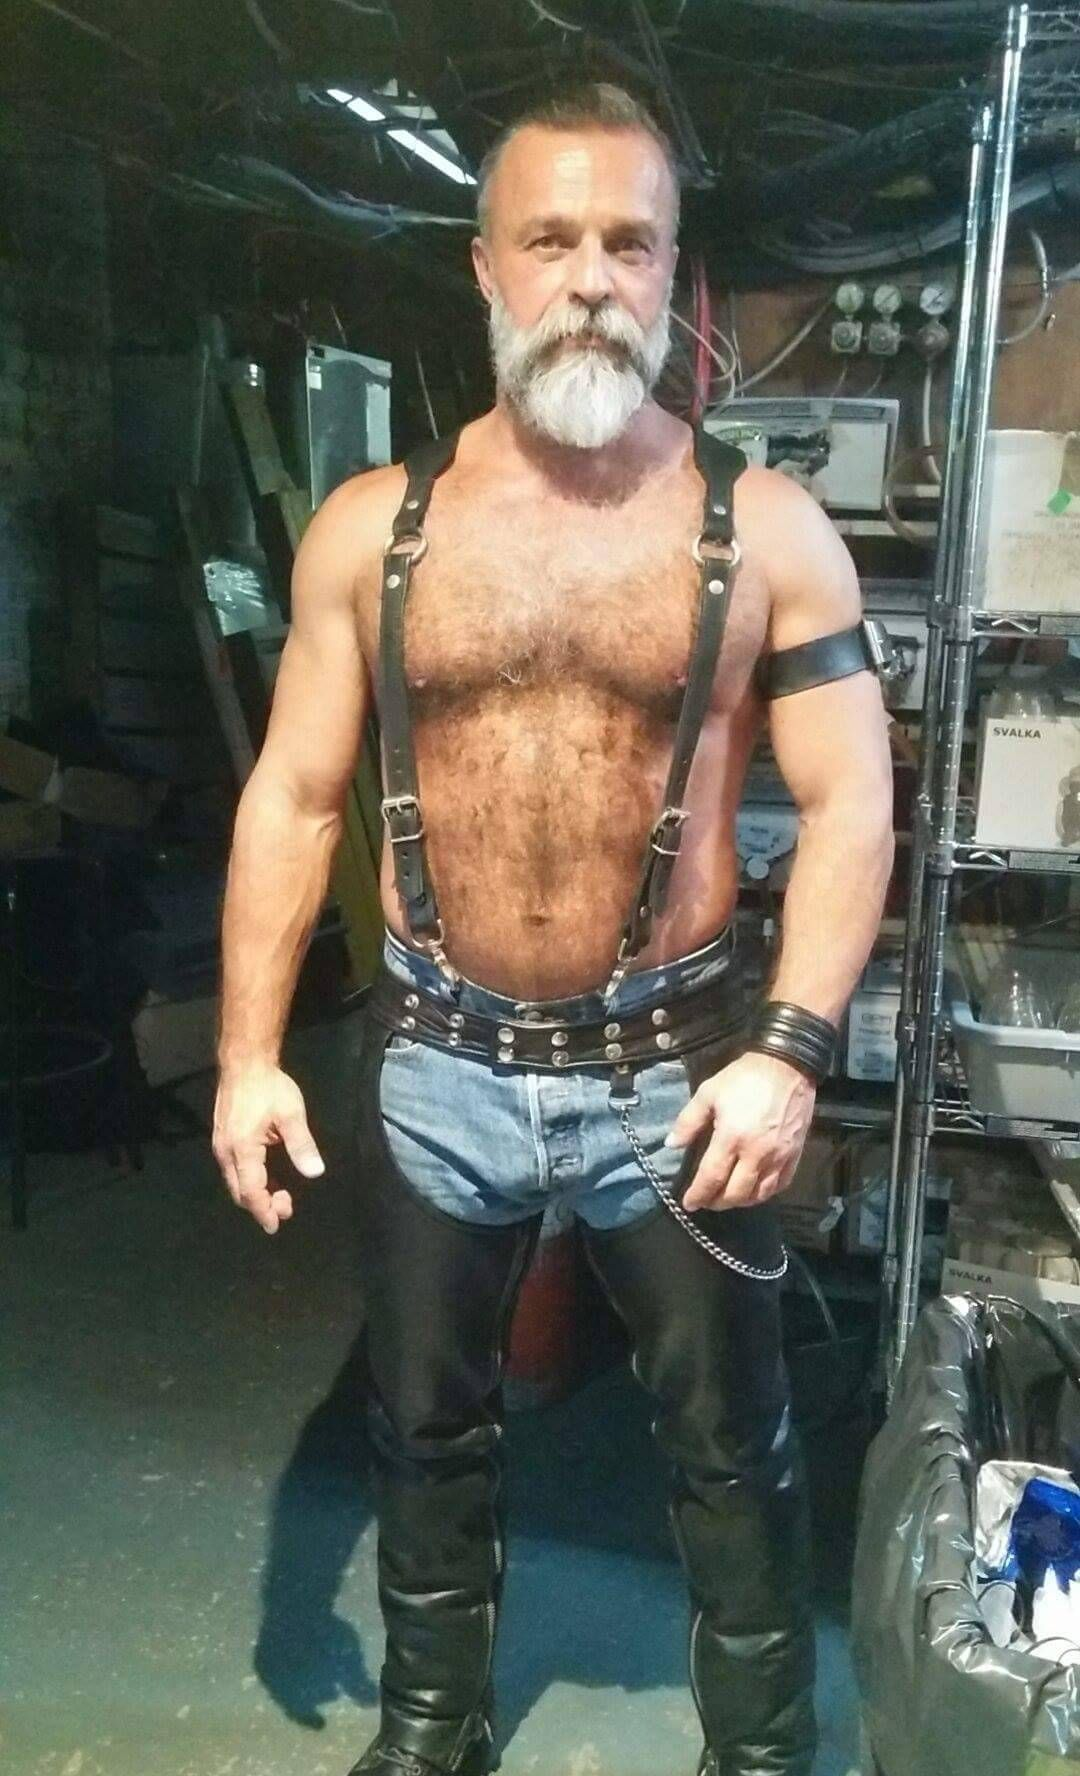 Stations that play Leather Daddy